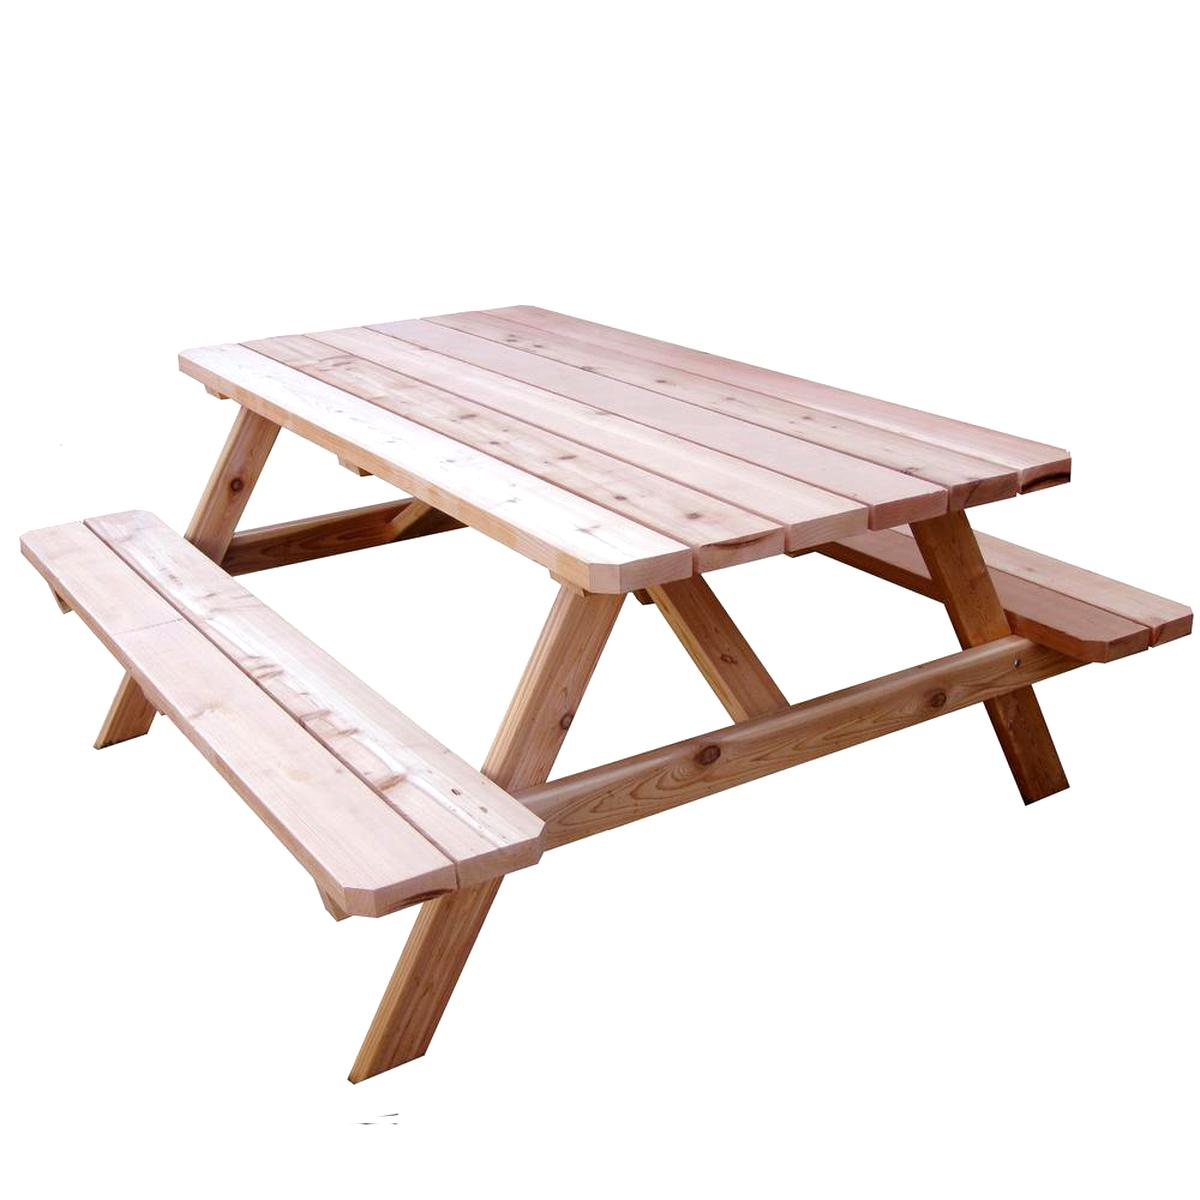 Tremendous Picnic Table For Sale Only 2 Left At 70 Ibusinesslaw Wood Chair Design Ideas Ibusinesslaworg